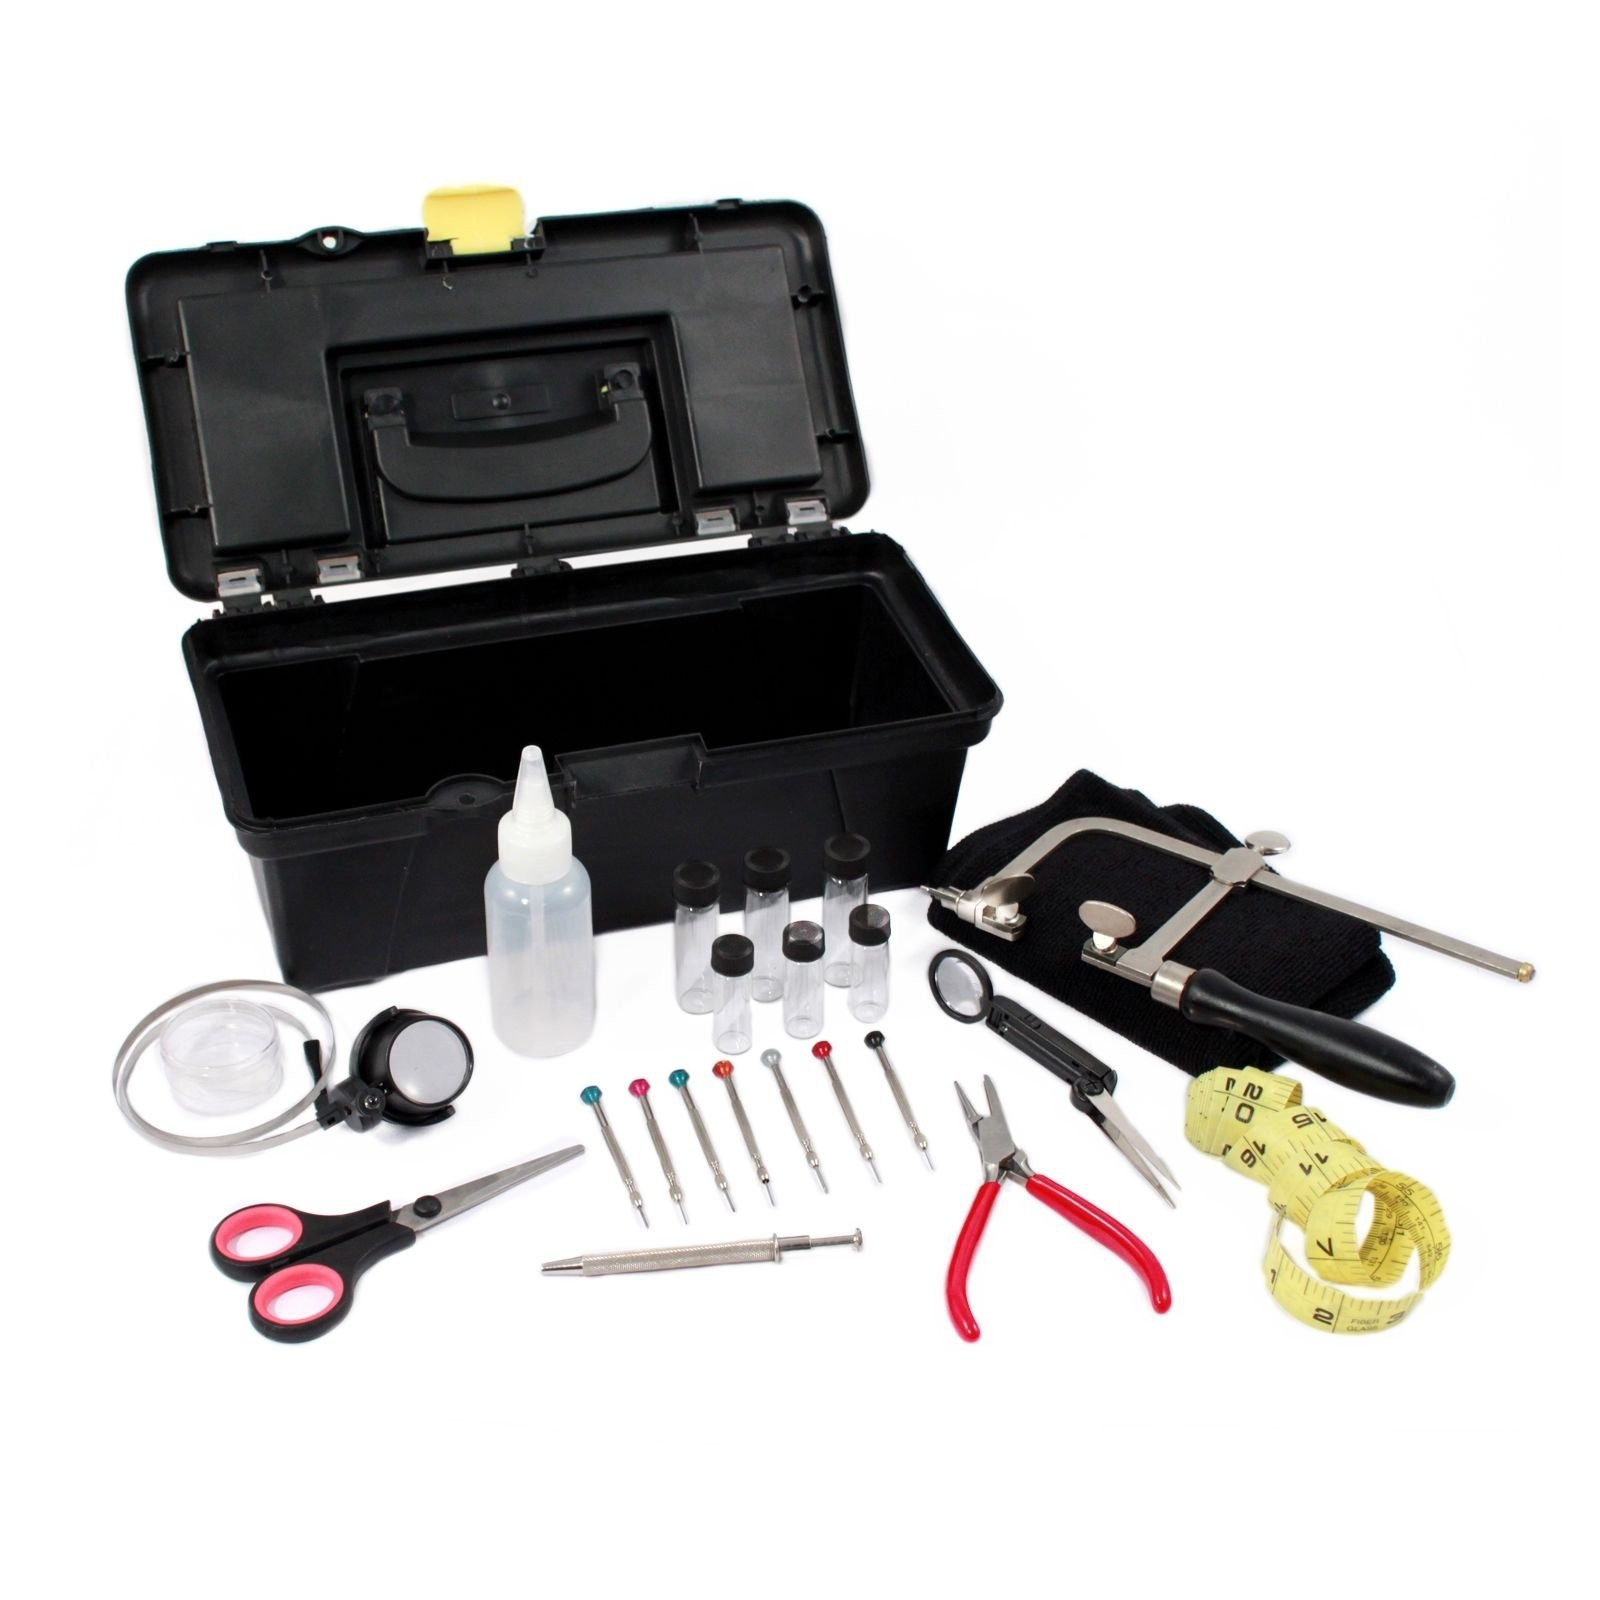 Jewelry Repair Combo Tool Kit Homemade DIY Watches Jewelry Bracelets 23pc